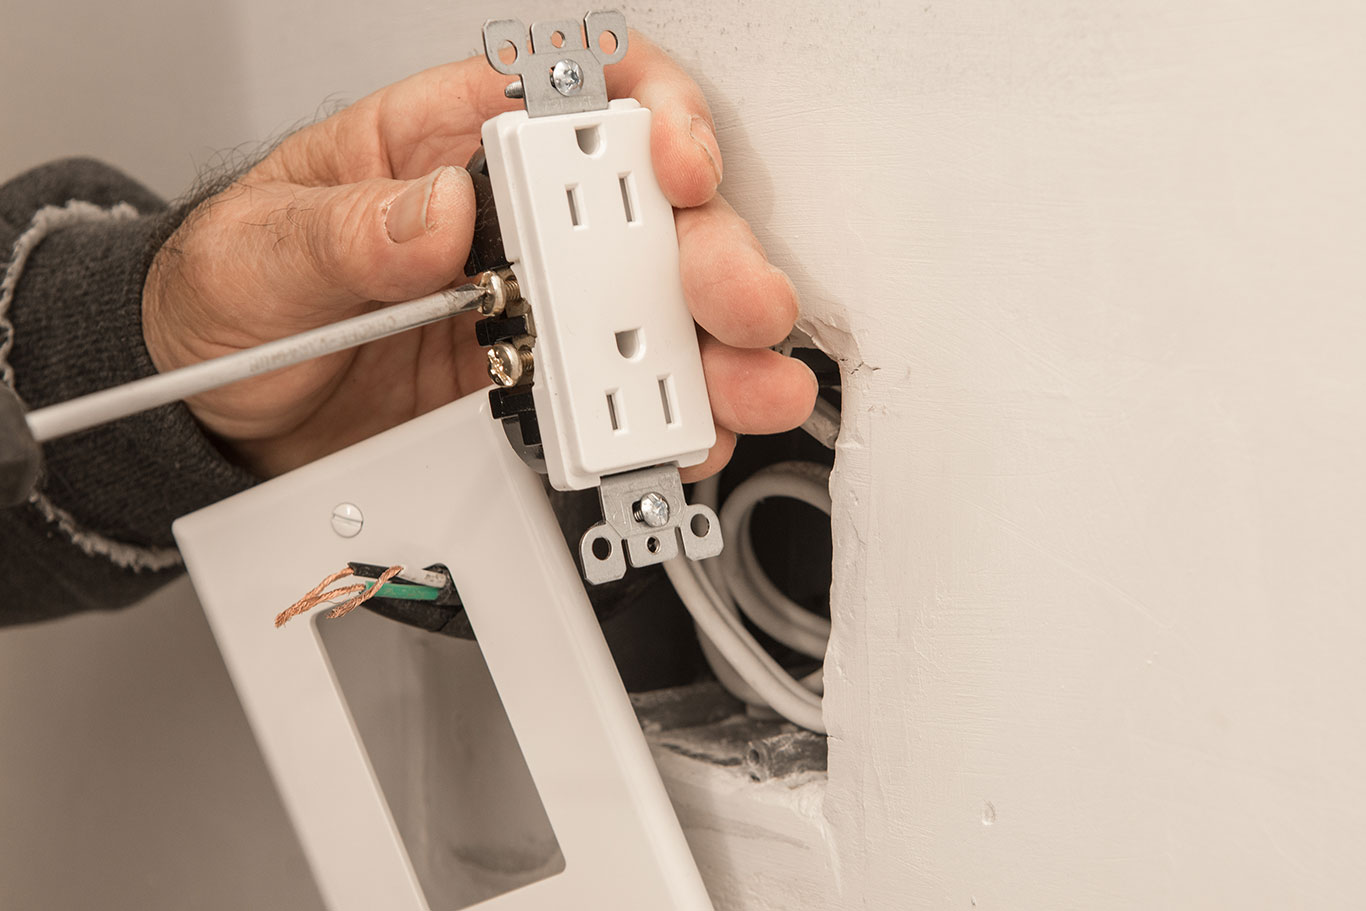 Install Outlets